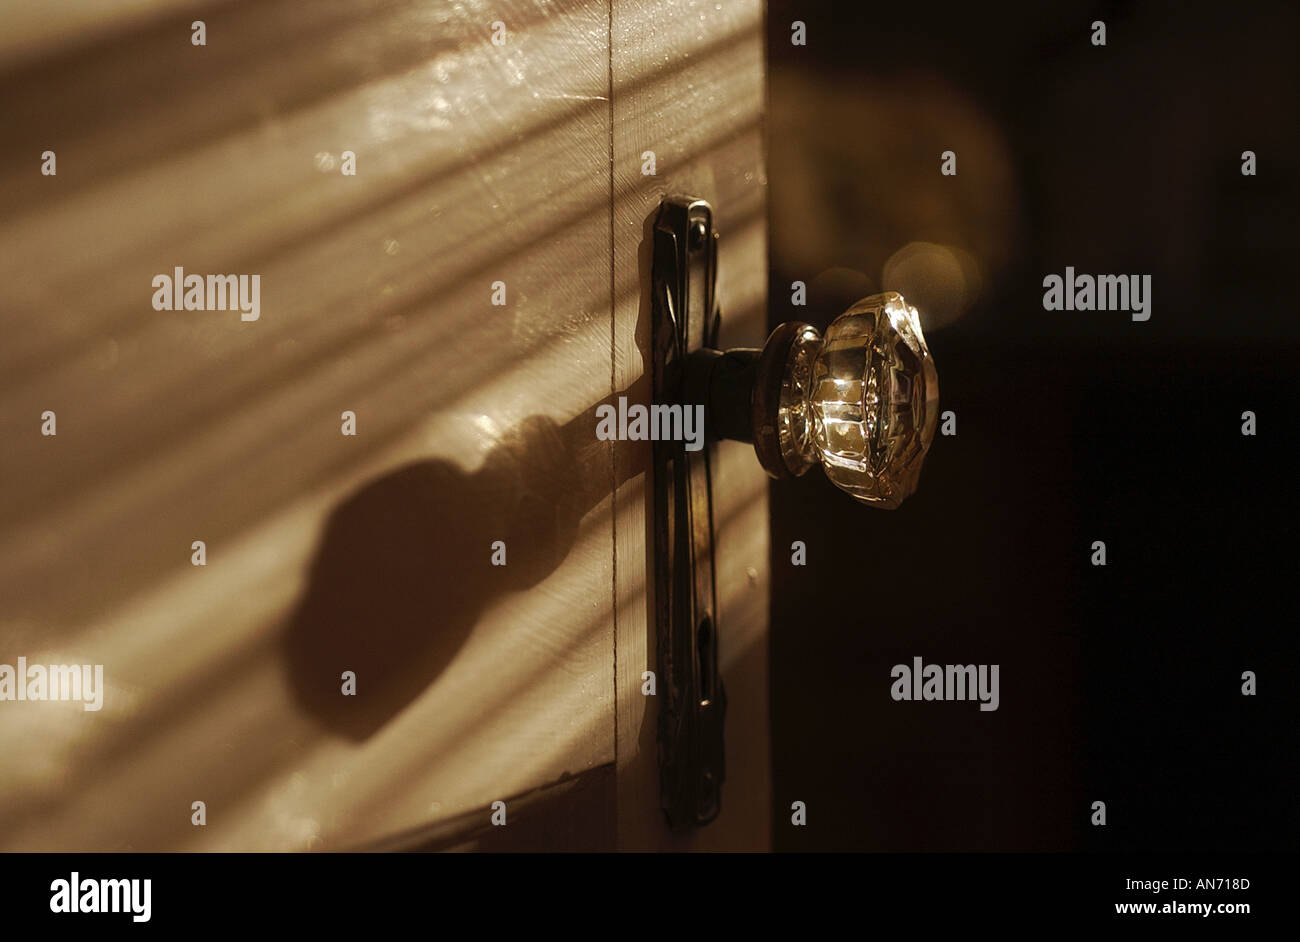 A clear glass antique door knob with dramatic shadows - Stock Image